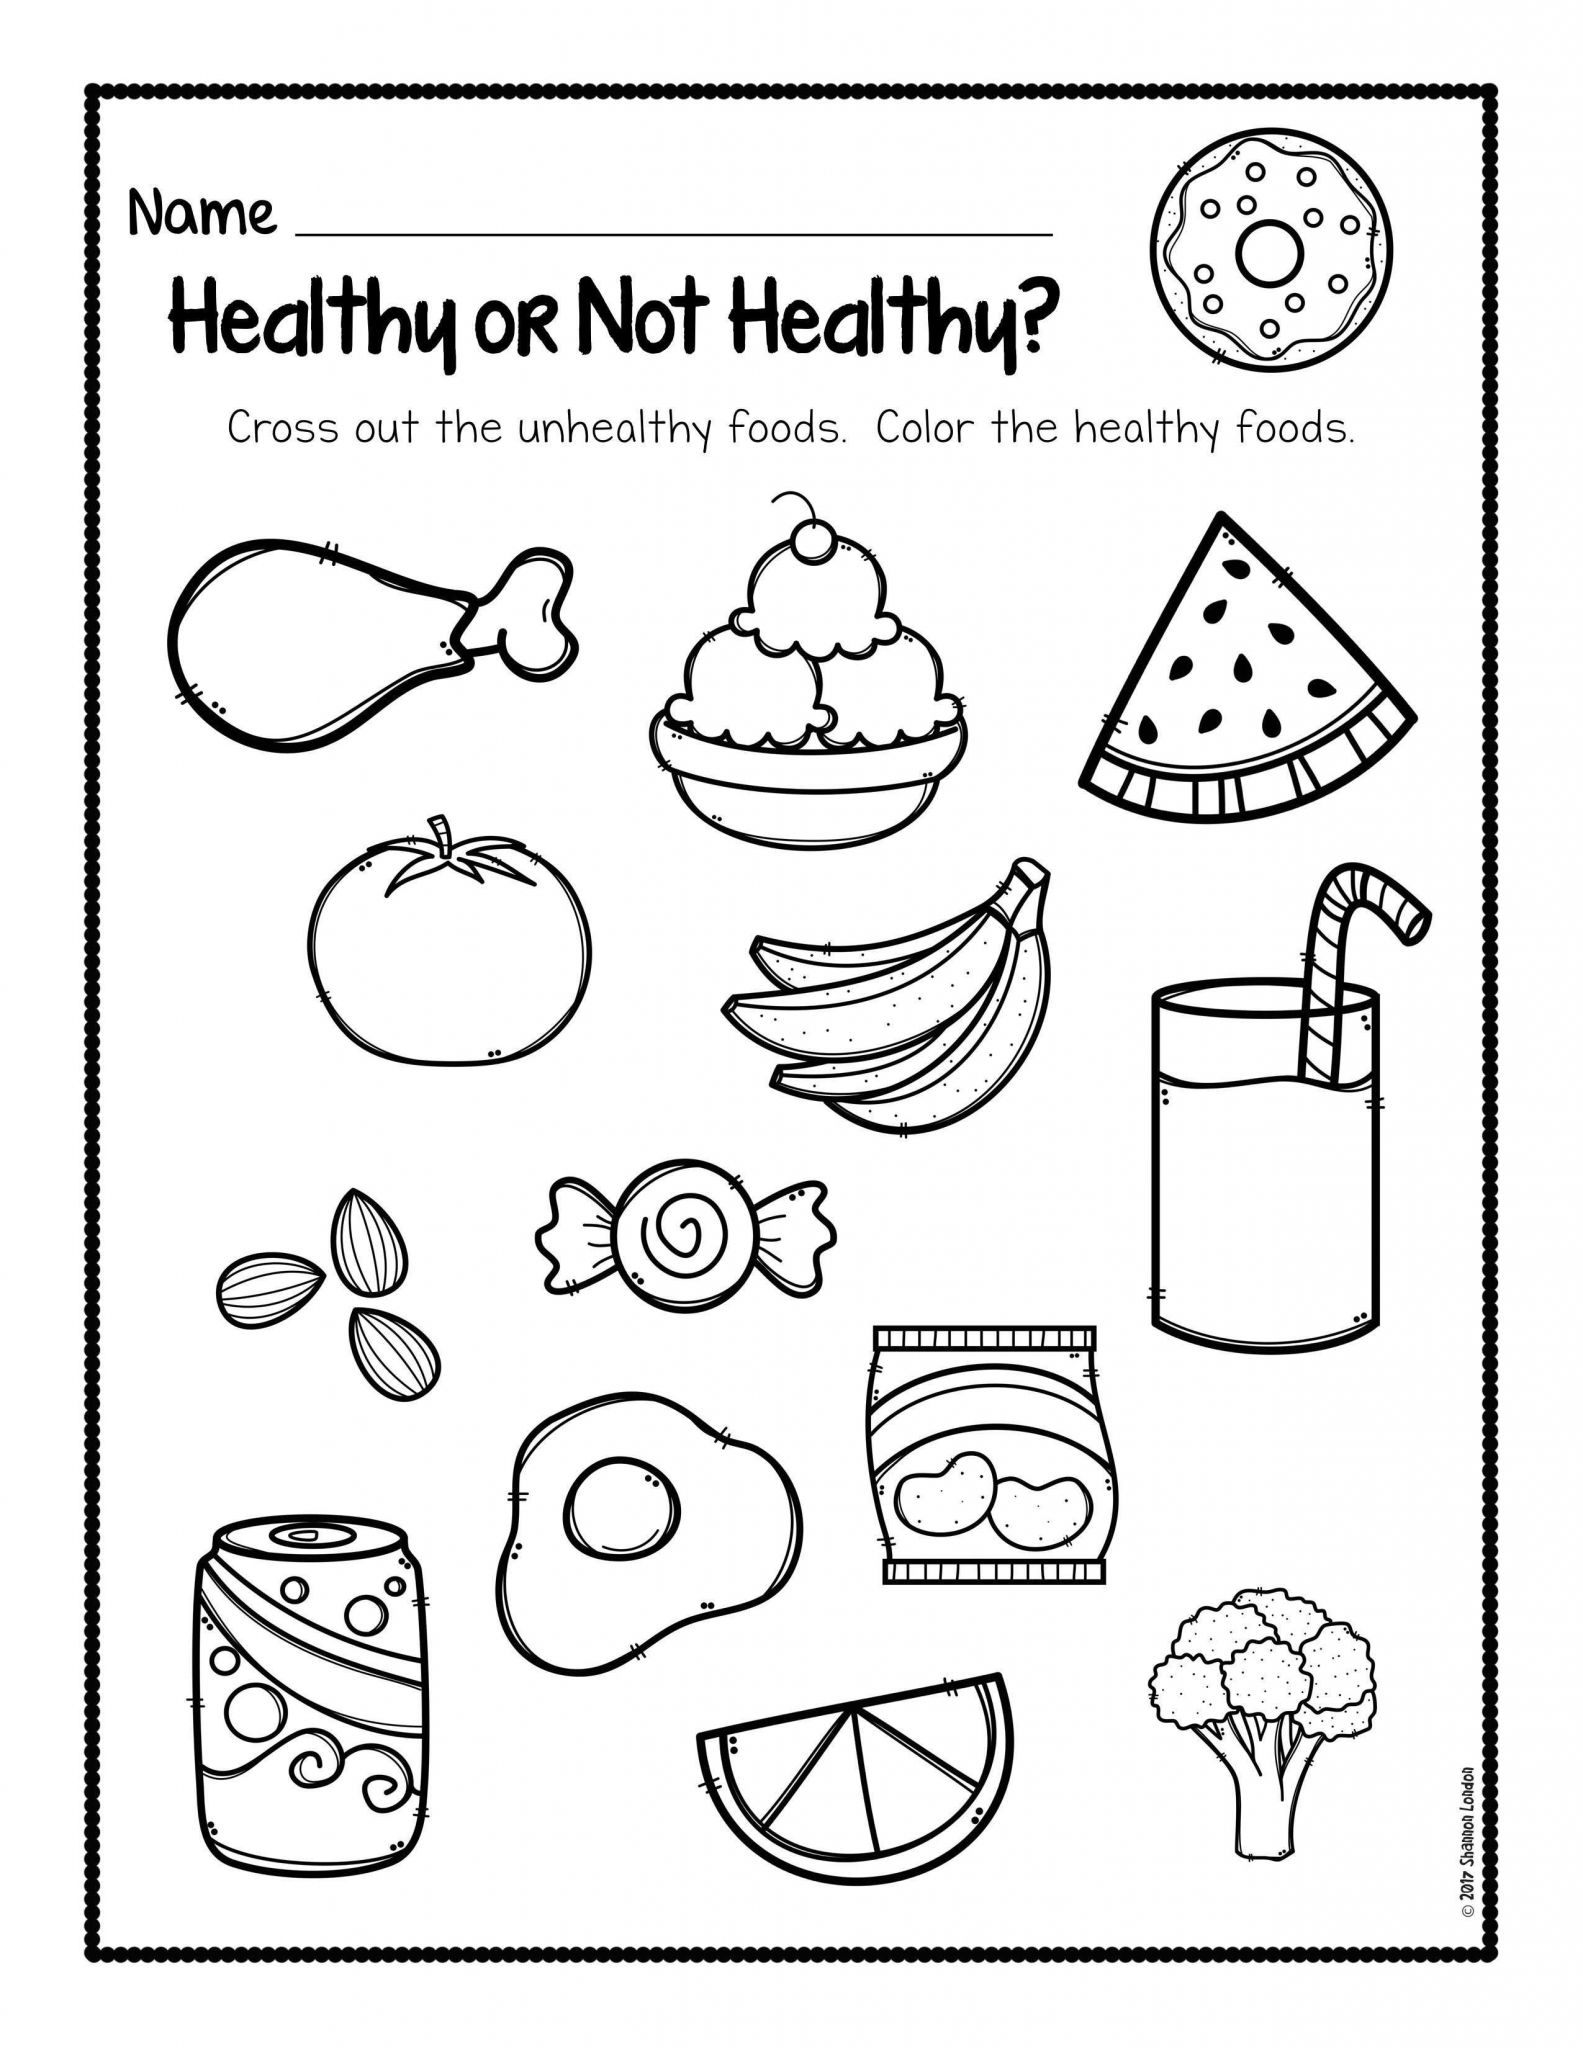 Nutrition Worksheets Pdf Along with Matheets Free Dental Health for Kindergarten Elementary Pdf Healthy